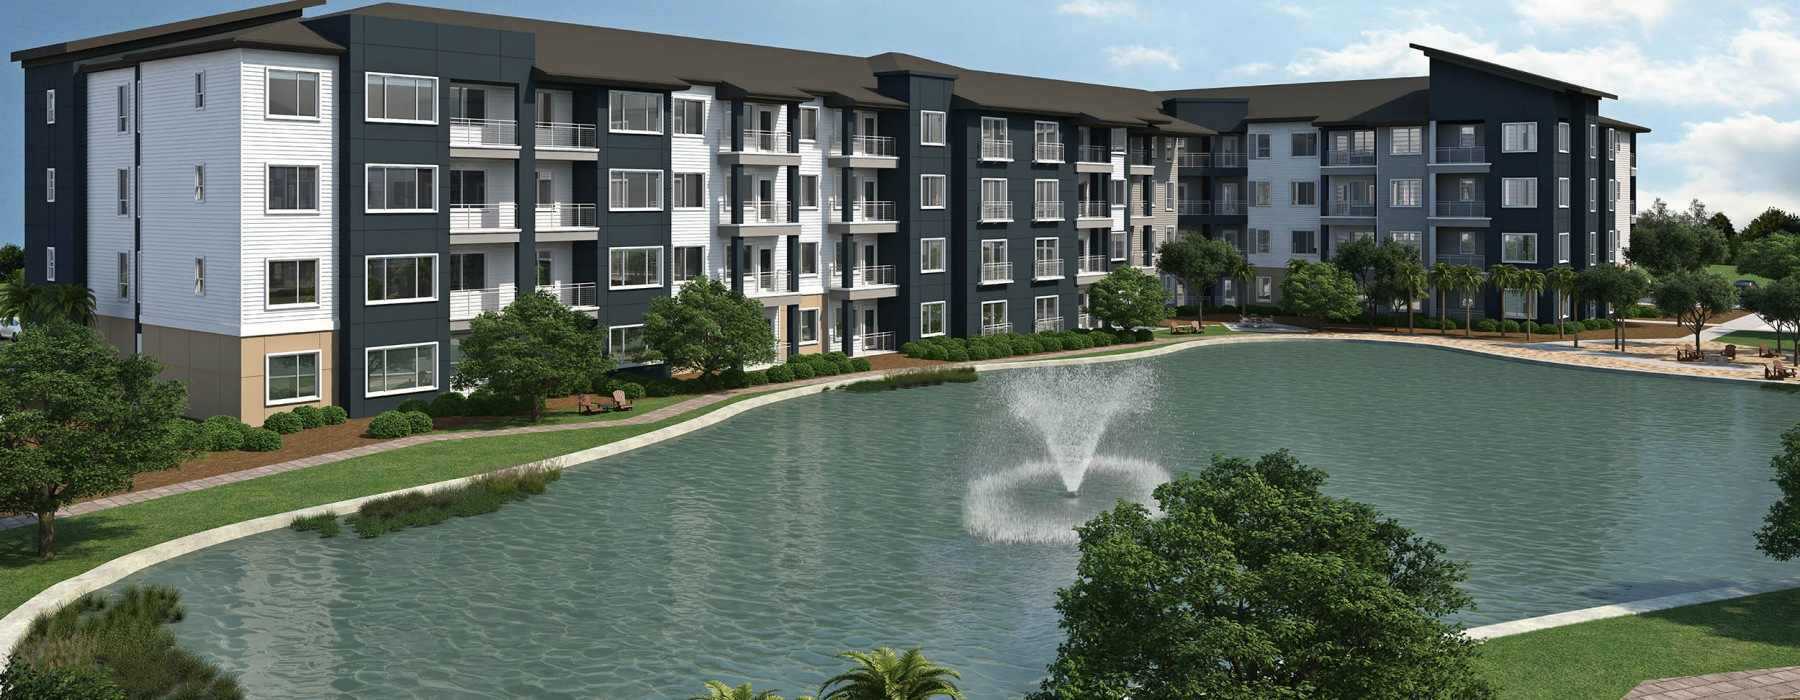 Exterior Rendering of Inspire Apartments with Pond | Inspire